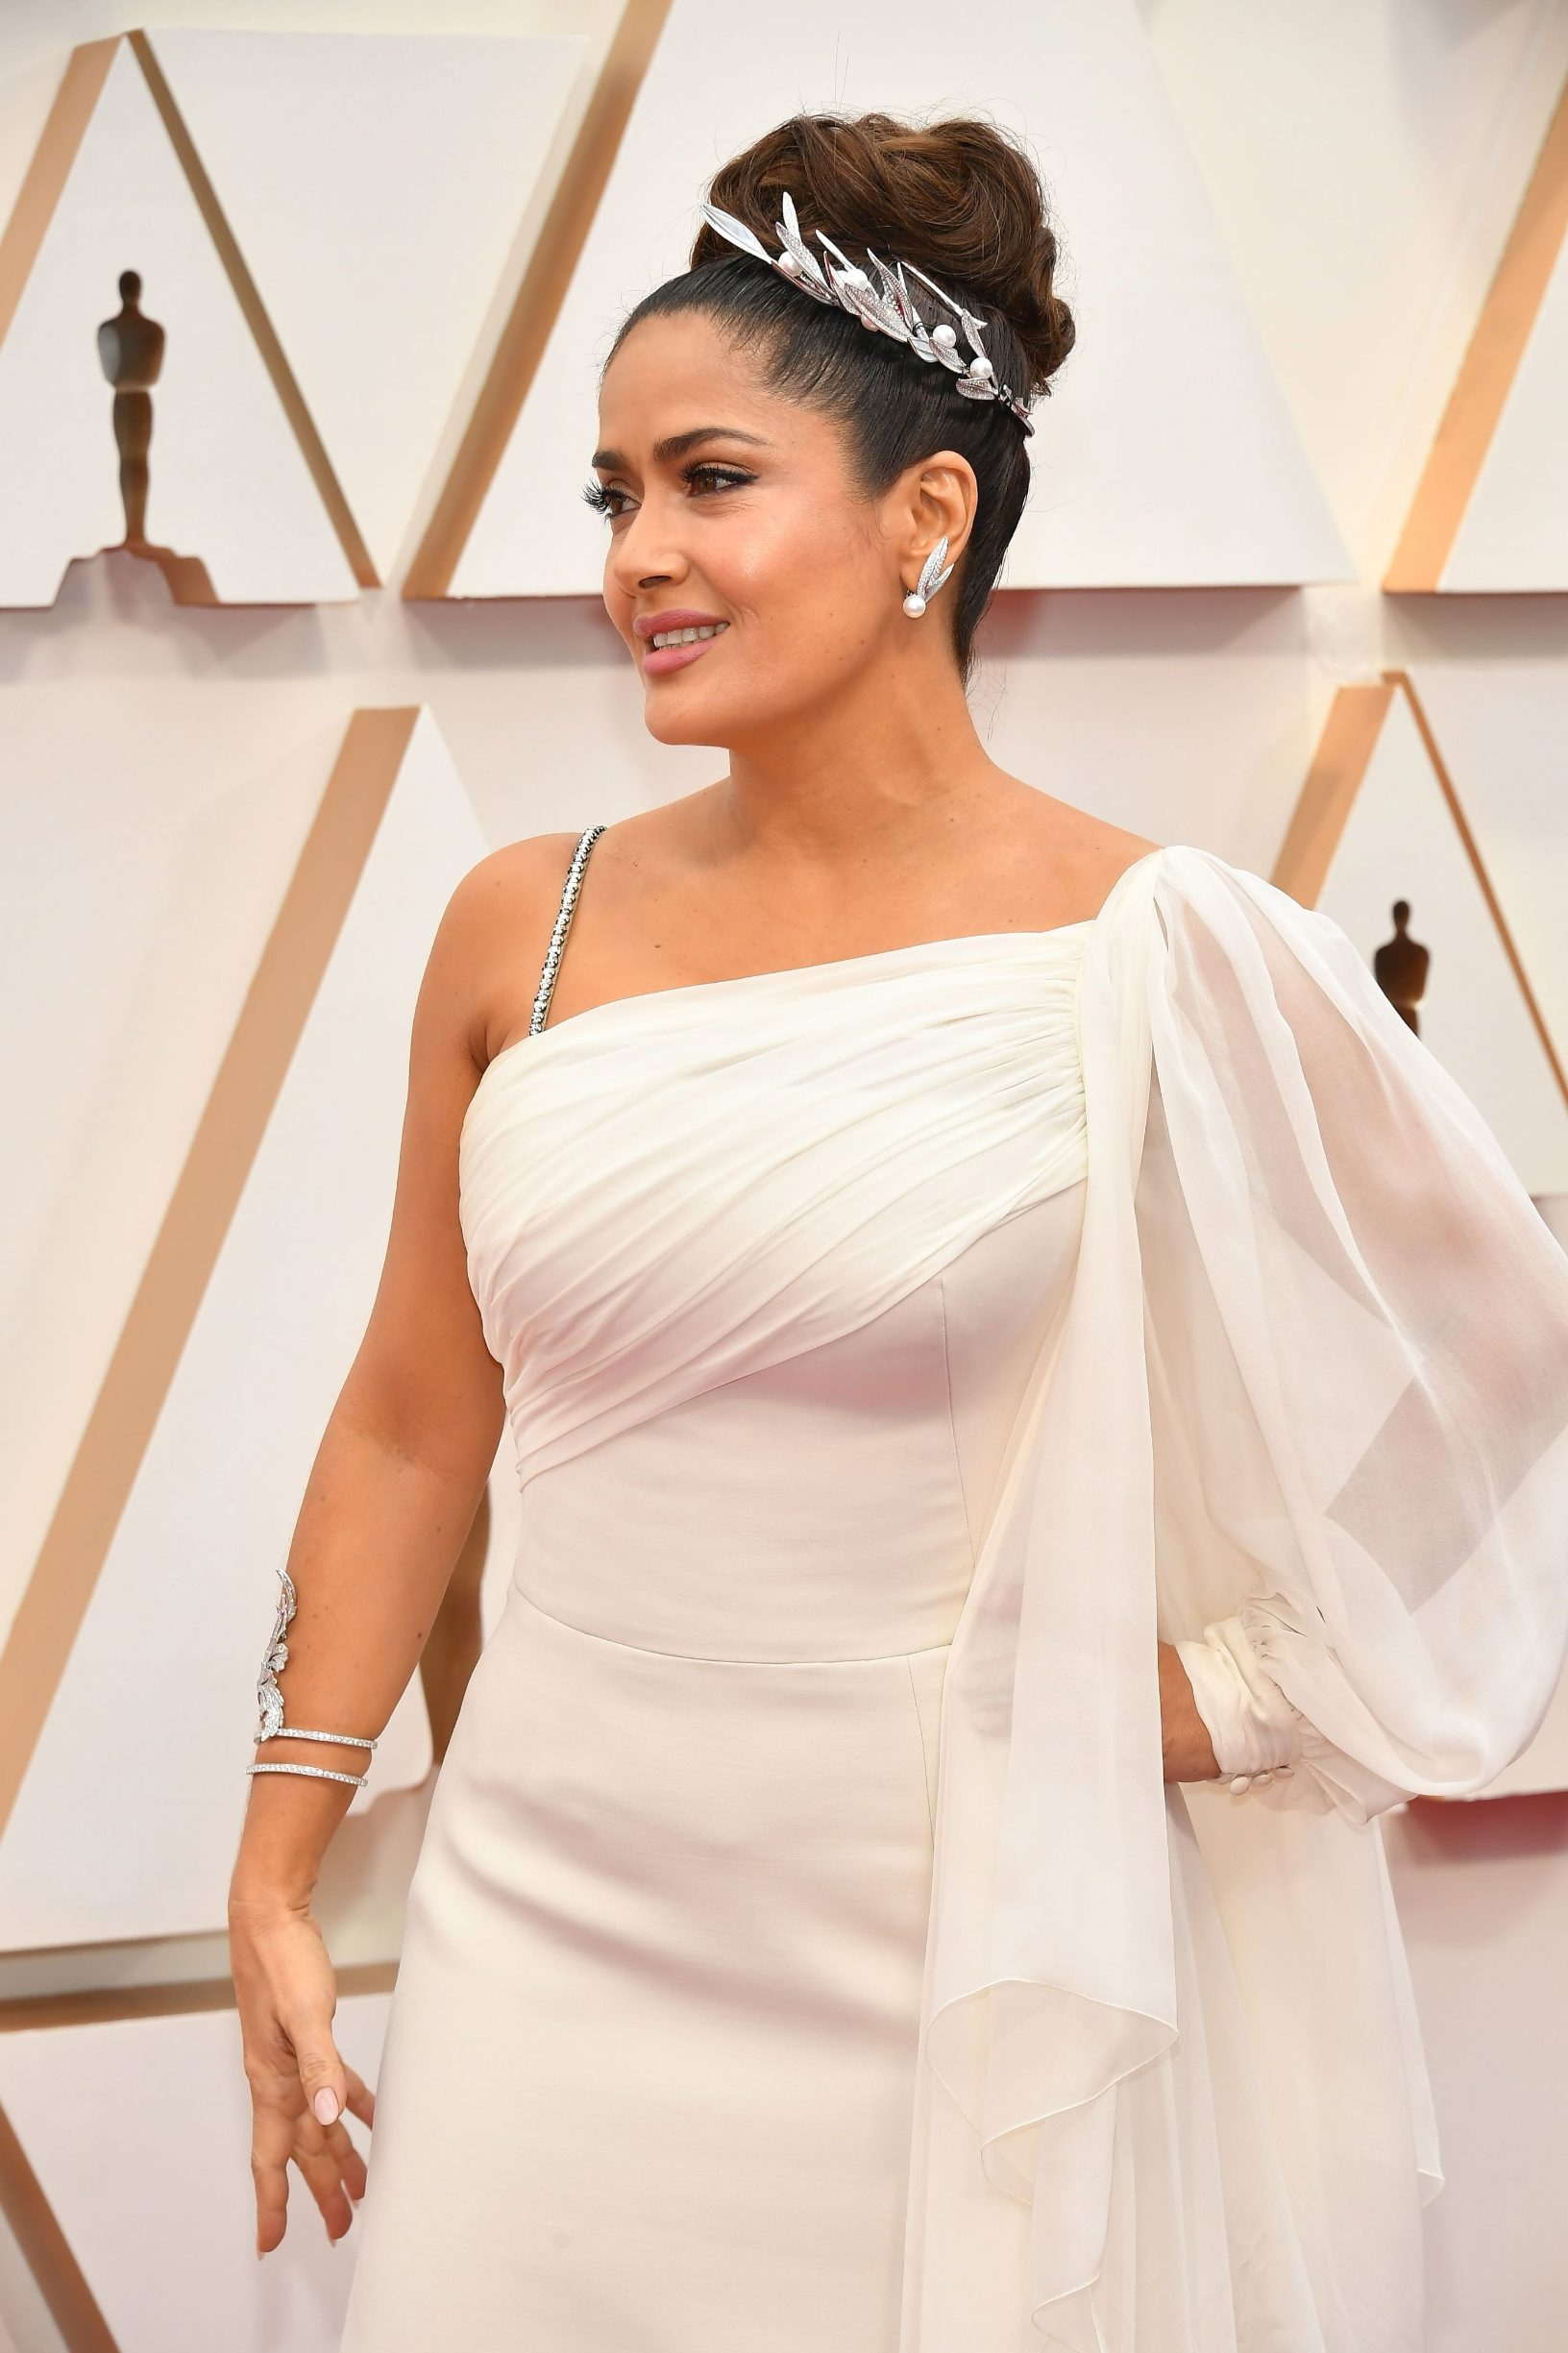 HOLLYWOOD, CALIFORNIA - FEBRUARY 09: Salma Hayek Pinault attends the 92nd Annual Academy Awards at Hollywood and Highland on February 09, 2020 in Hollywood, California.   Amy Sussman/Getty Images/AFP == FOR NEWSPAPERS, INTERNET, TELCOS & TELEVISION USE ONLY ==